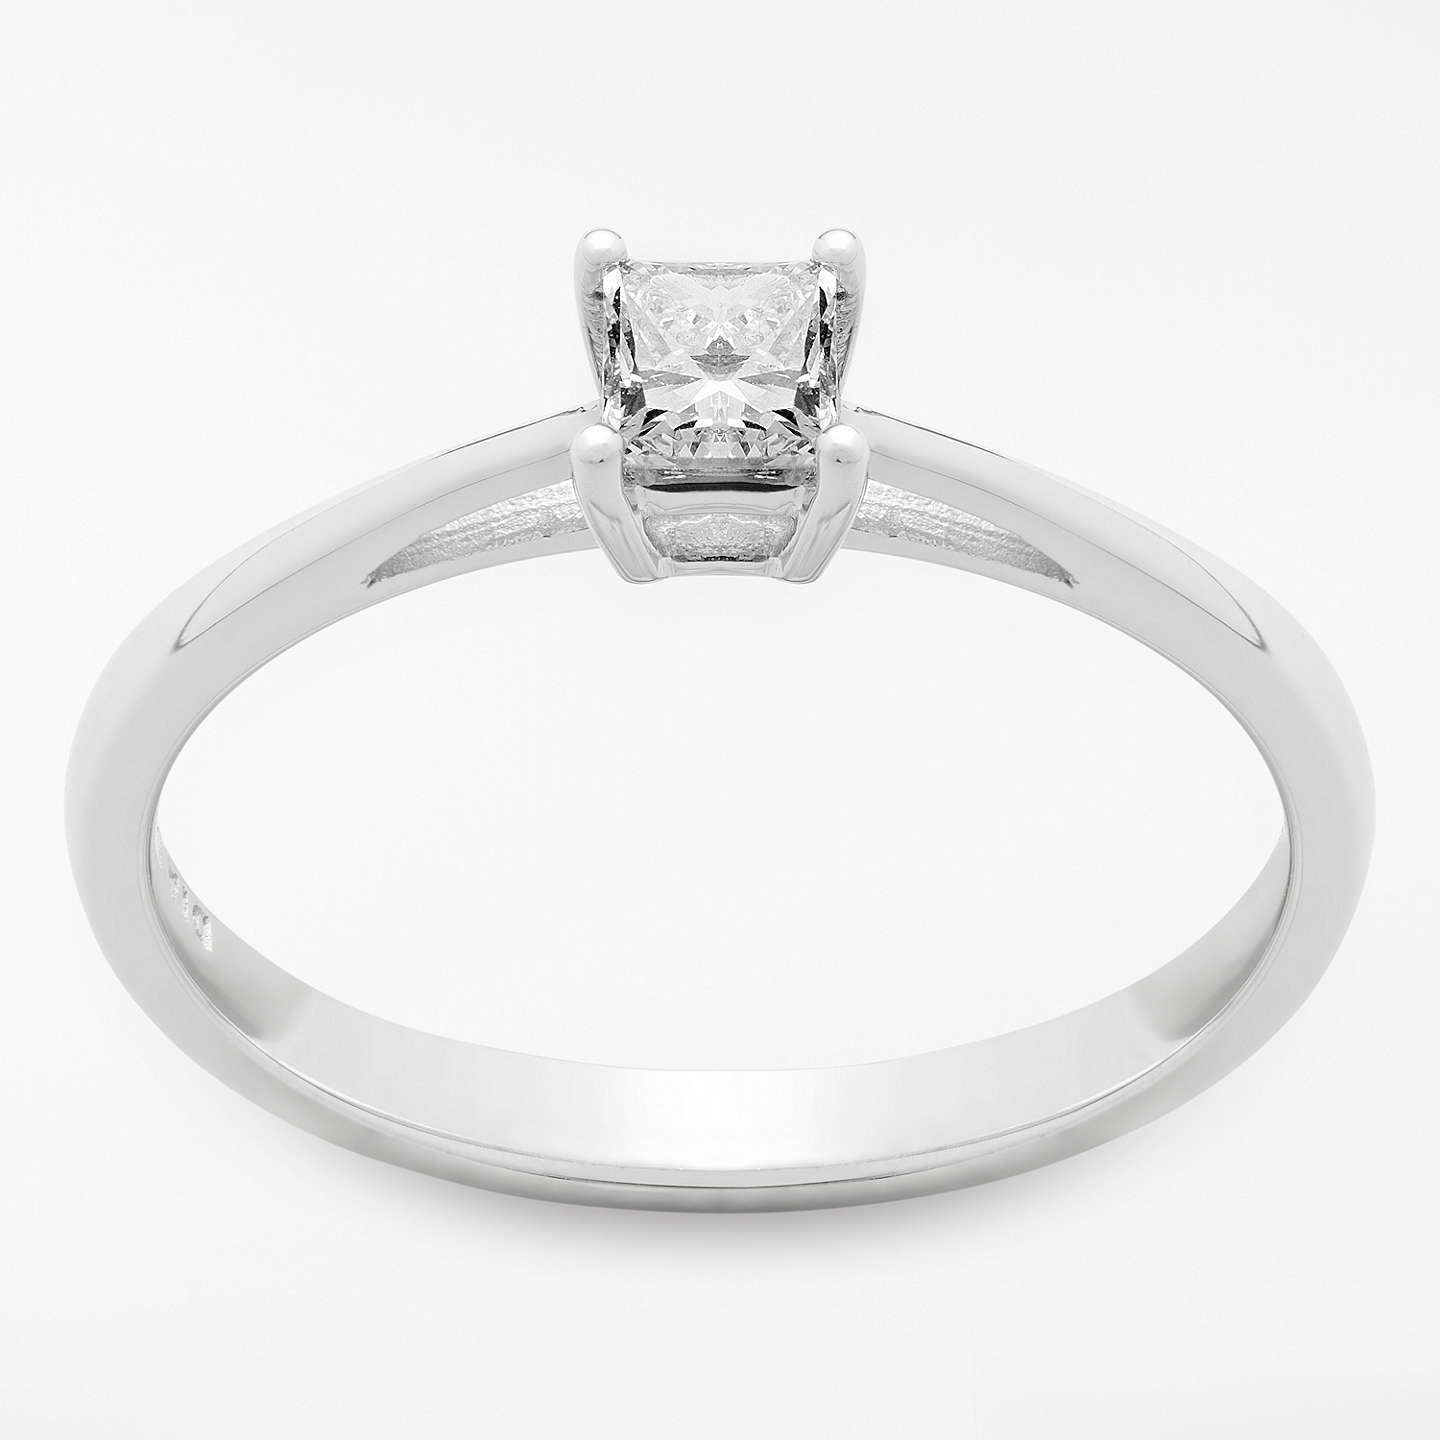 jewellery jewelry coast ring princess worthington cut accents jewelers engagement diamond rings